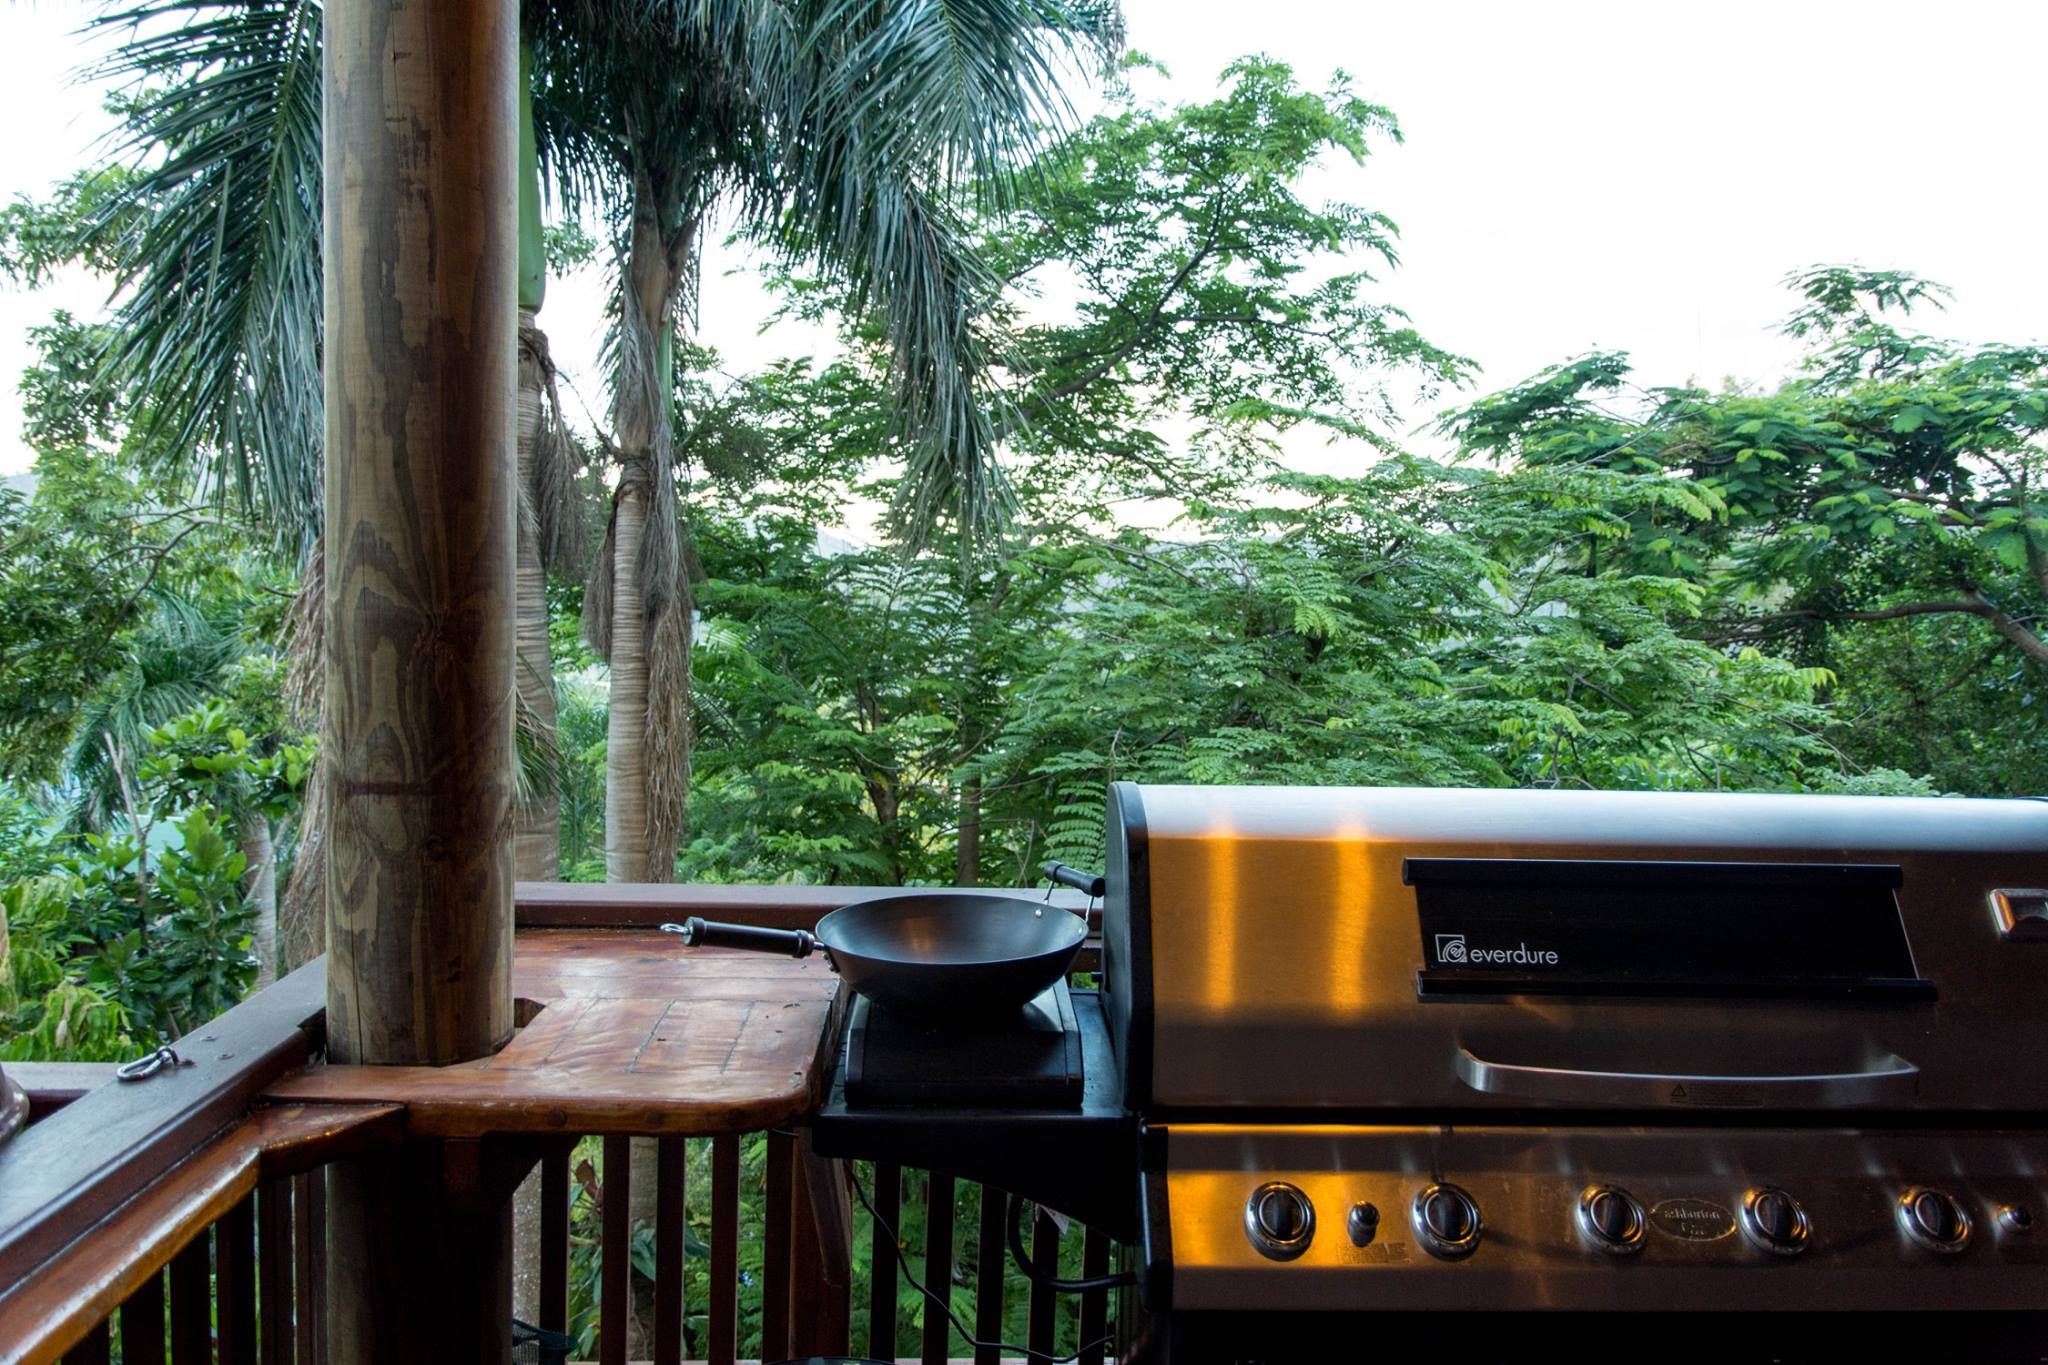 Barbecue bij Whitsundays BNB Retreat